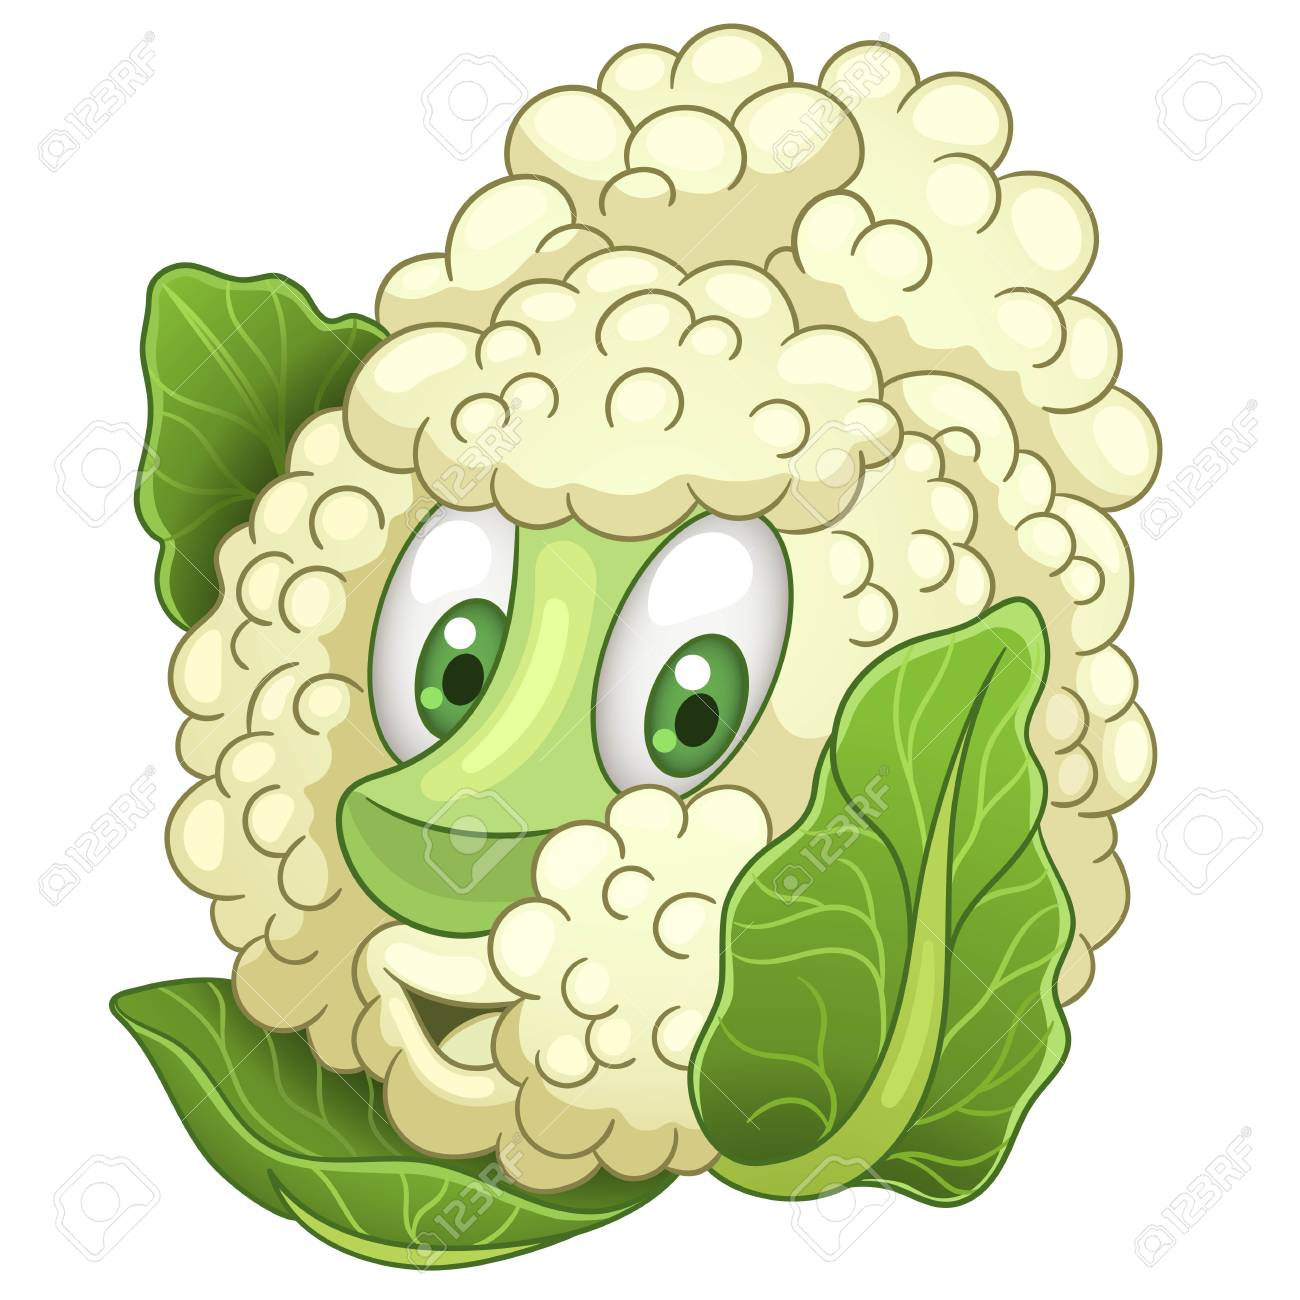 Cartoon Cauliflower Character With Cabbage Sprouts Happy Vegetable Symbol Eco Food Icon Design